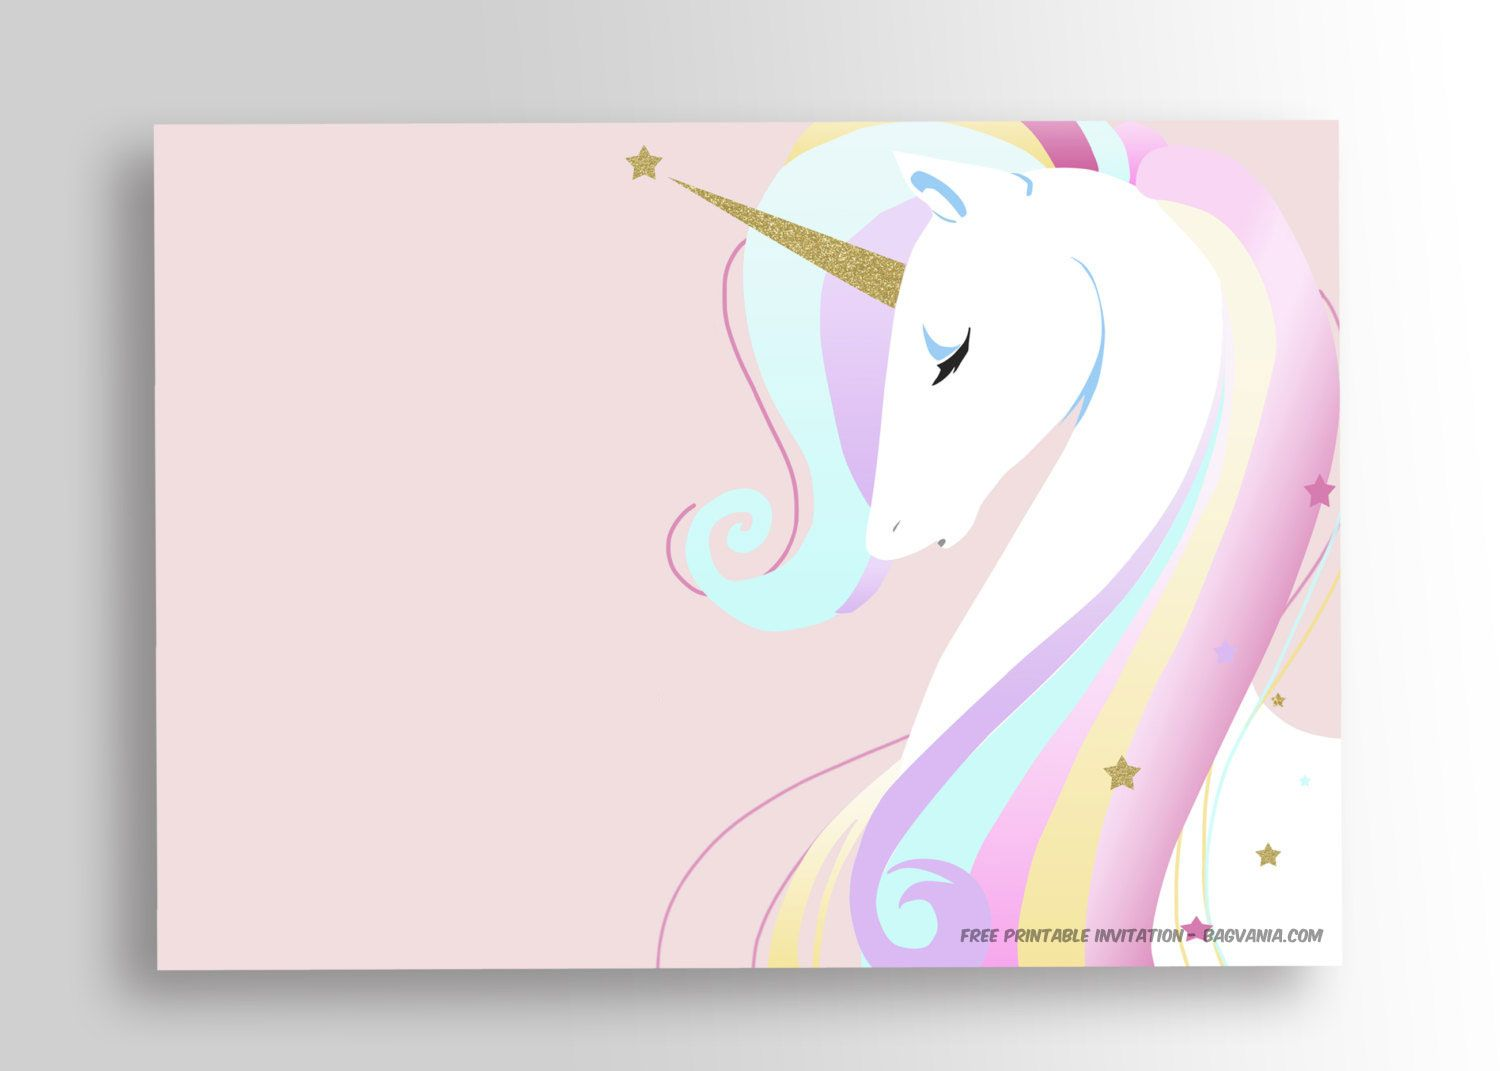 graphic regarding Free Printable Unicorn Template named Totally free Printable Golden Unicorn Birthday Invitation Occasion